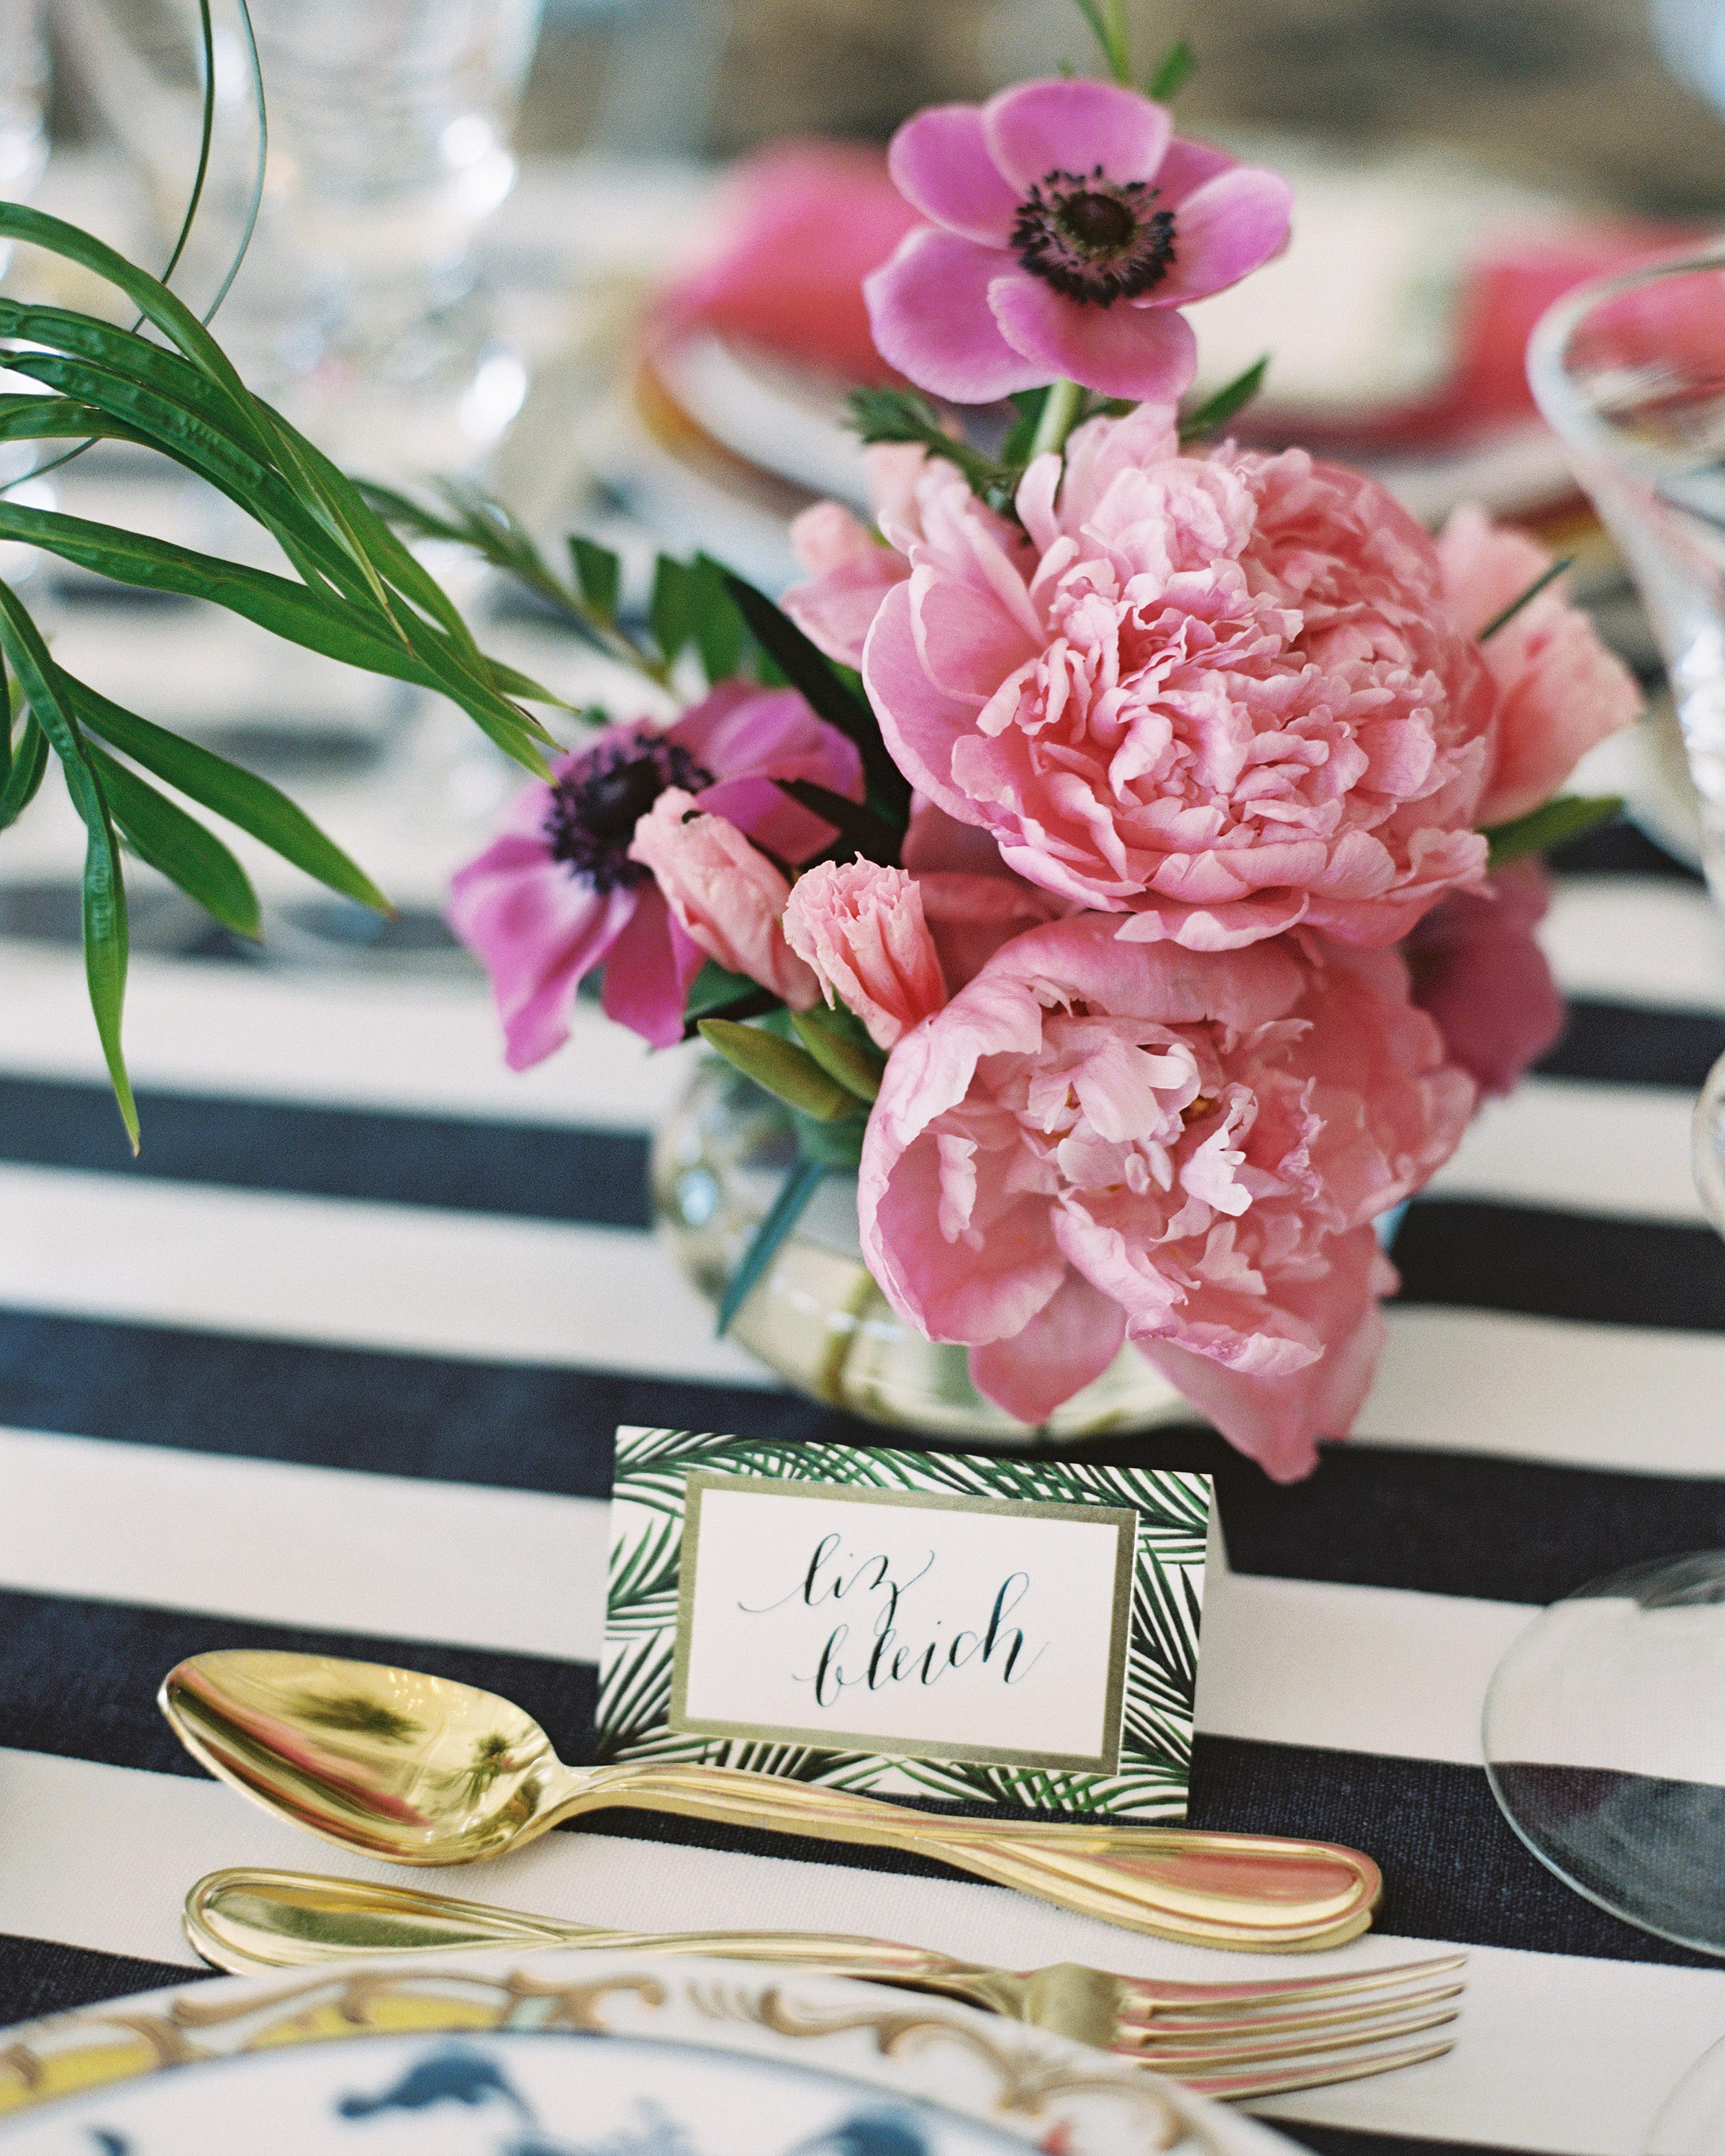 adrienne-bridal-shower-placecard-9-6134175-0716.jpg